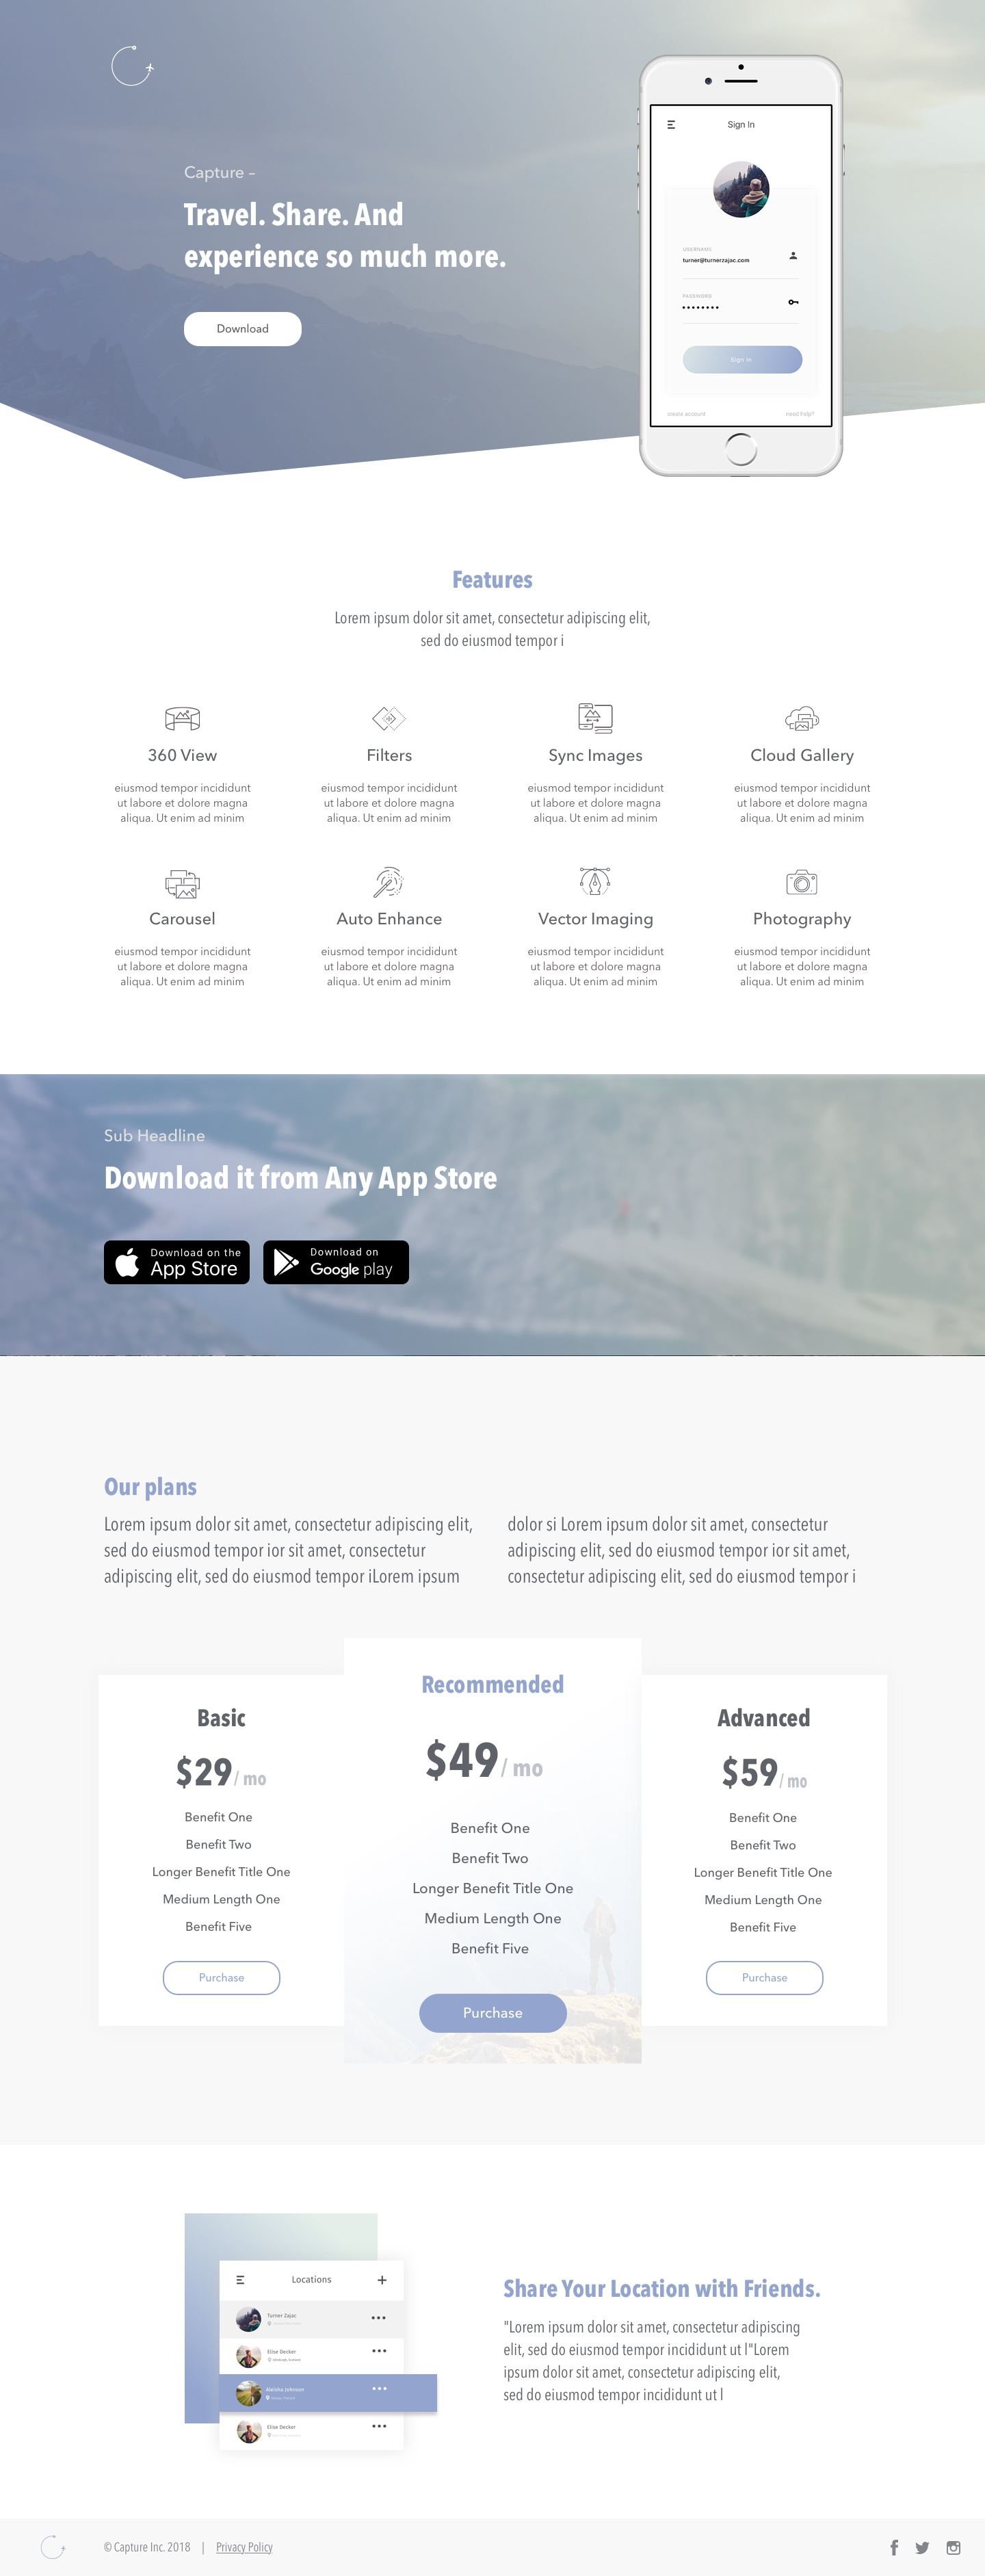 Application pricing page